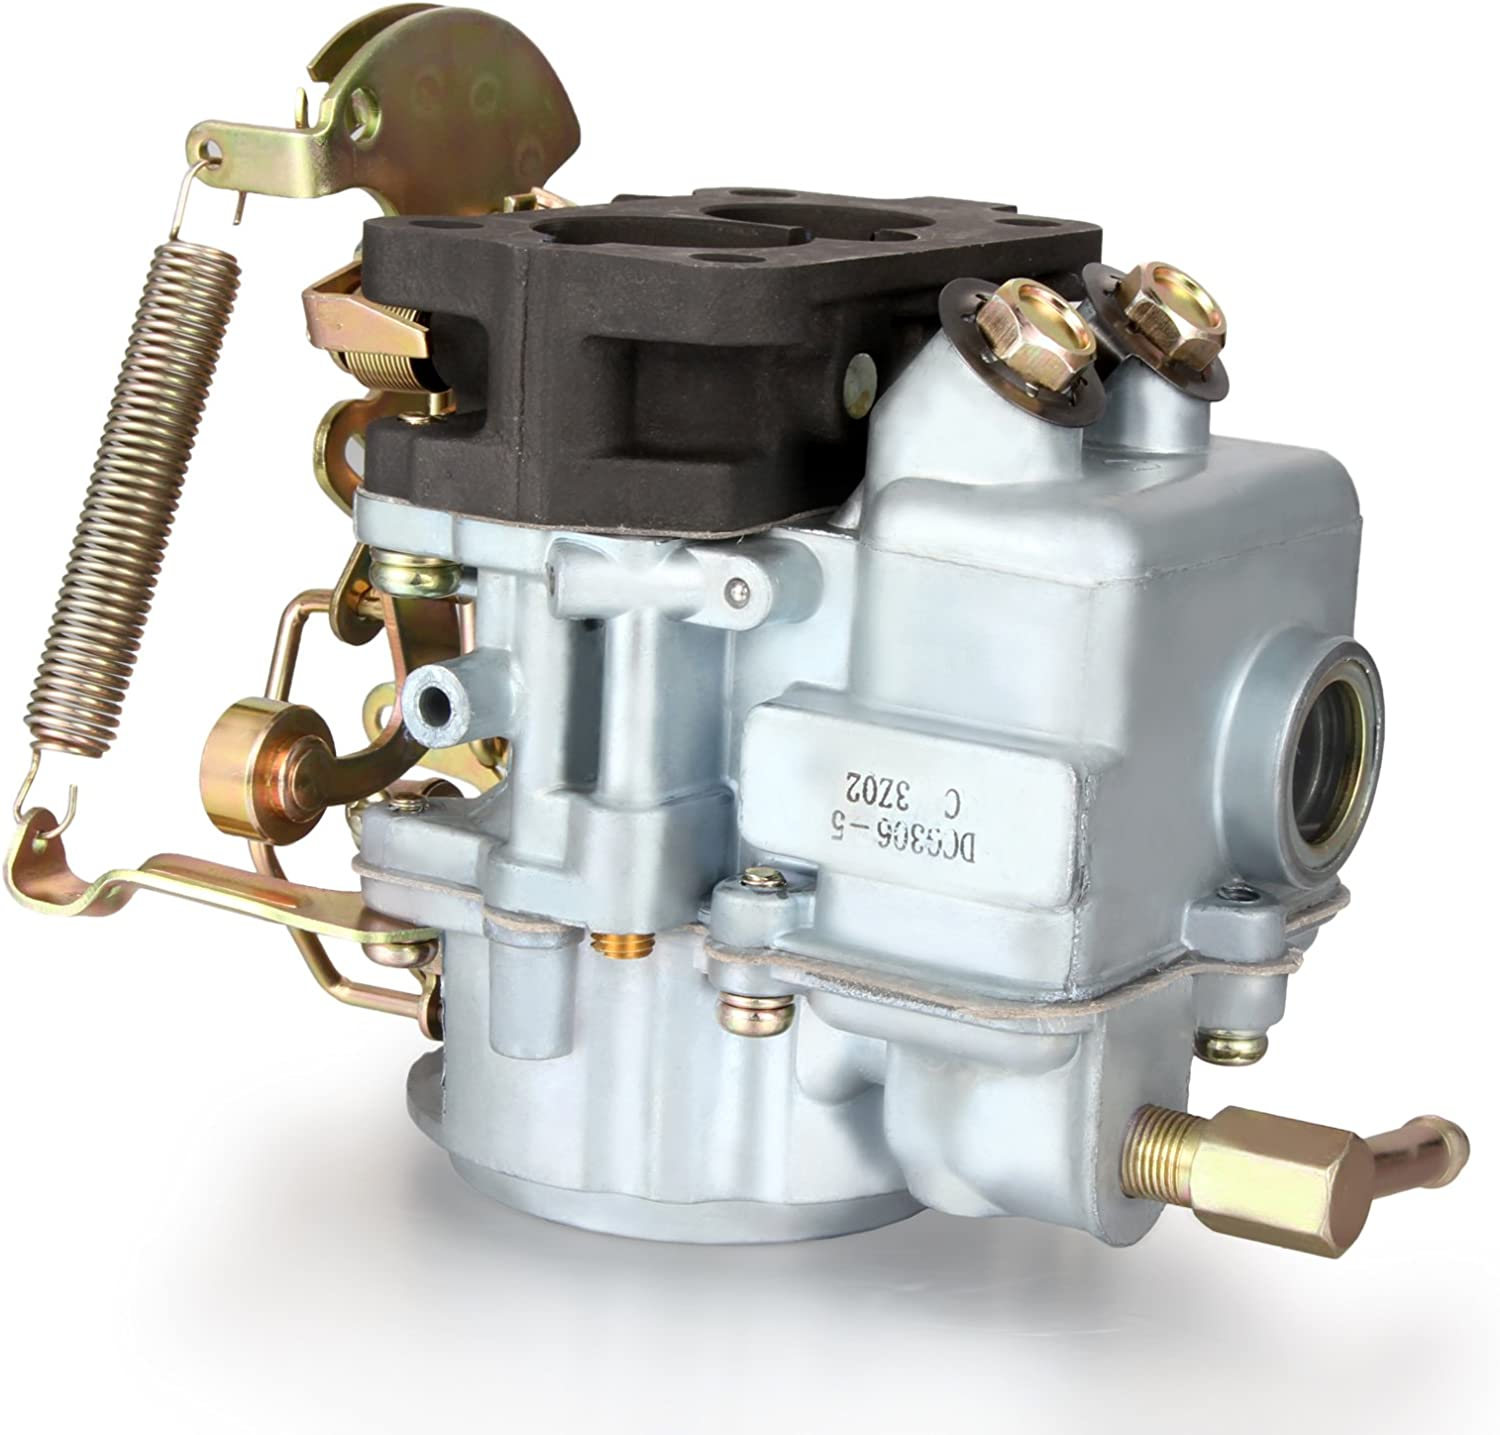 Complete New Carburettor Carby For Nissan B210 1.6L 1597CC 16010-H1602